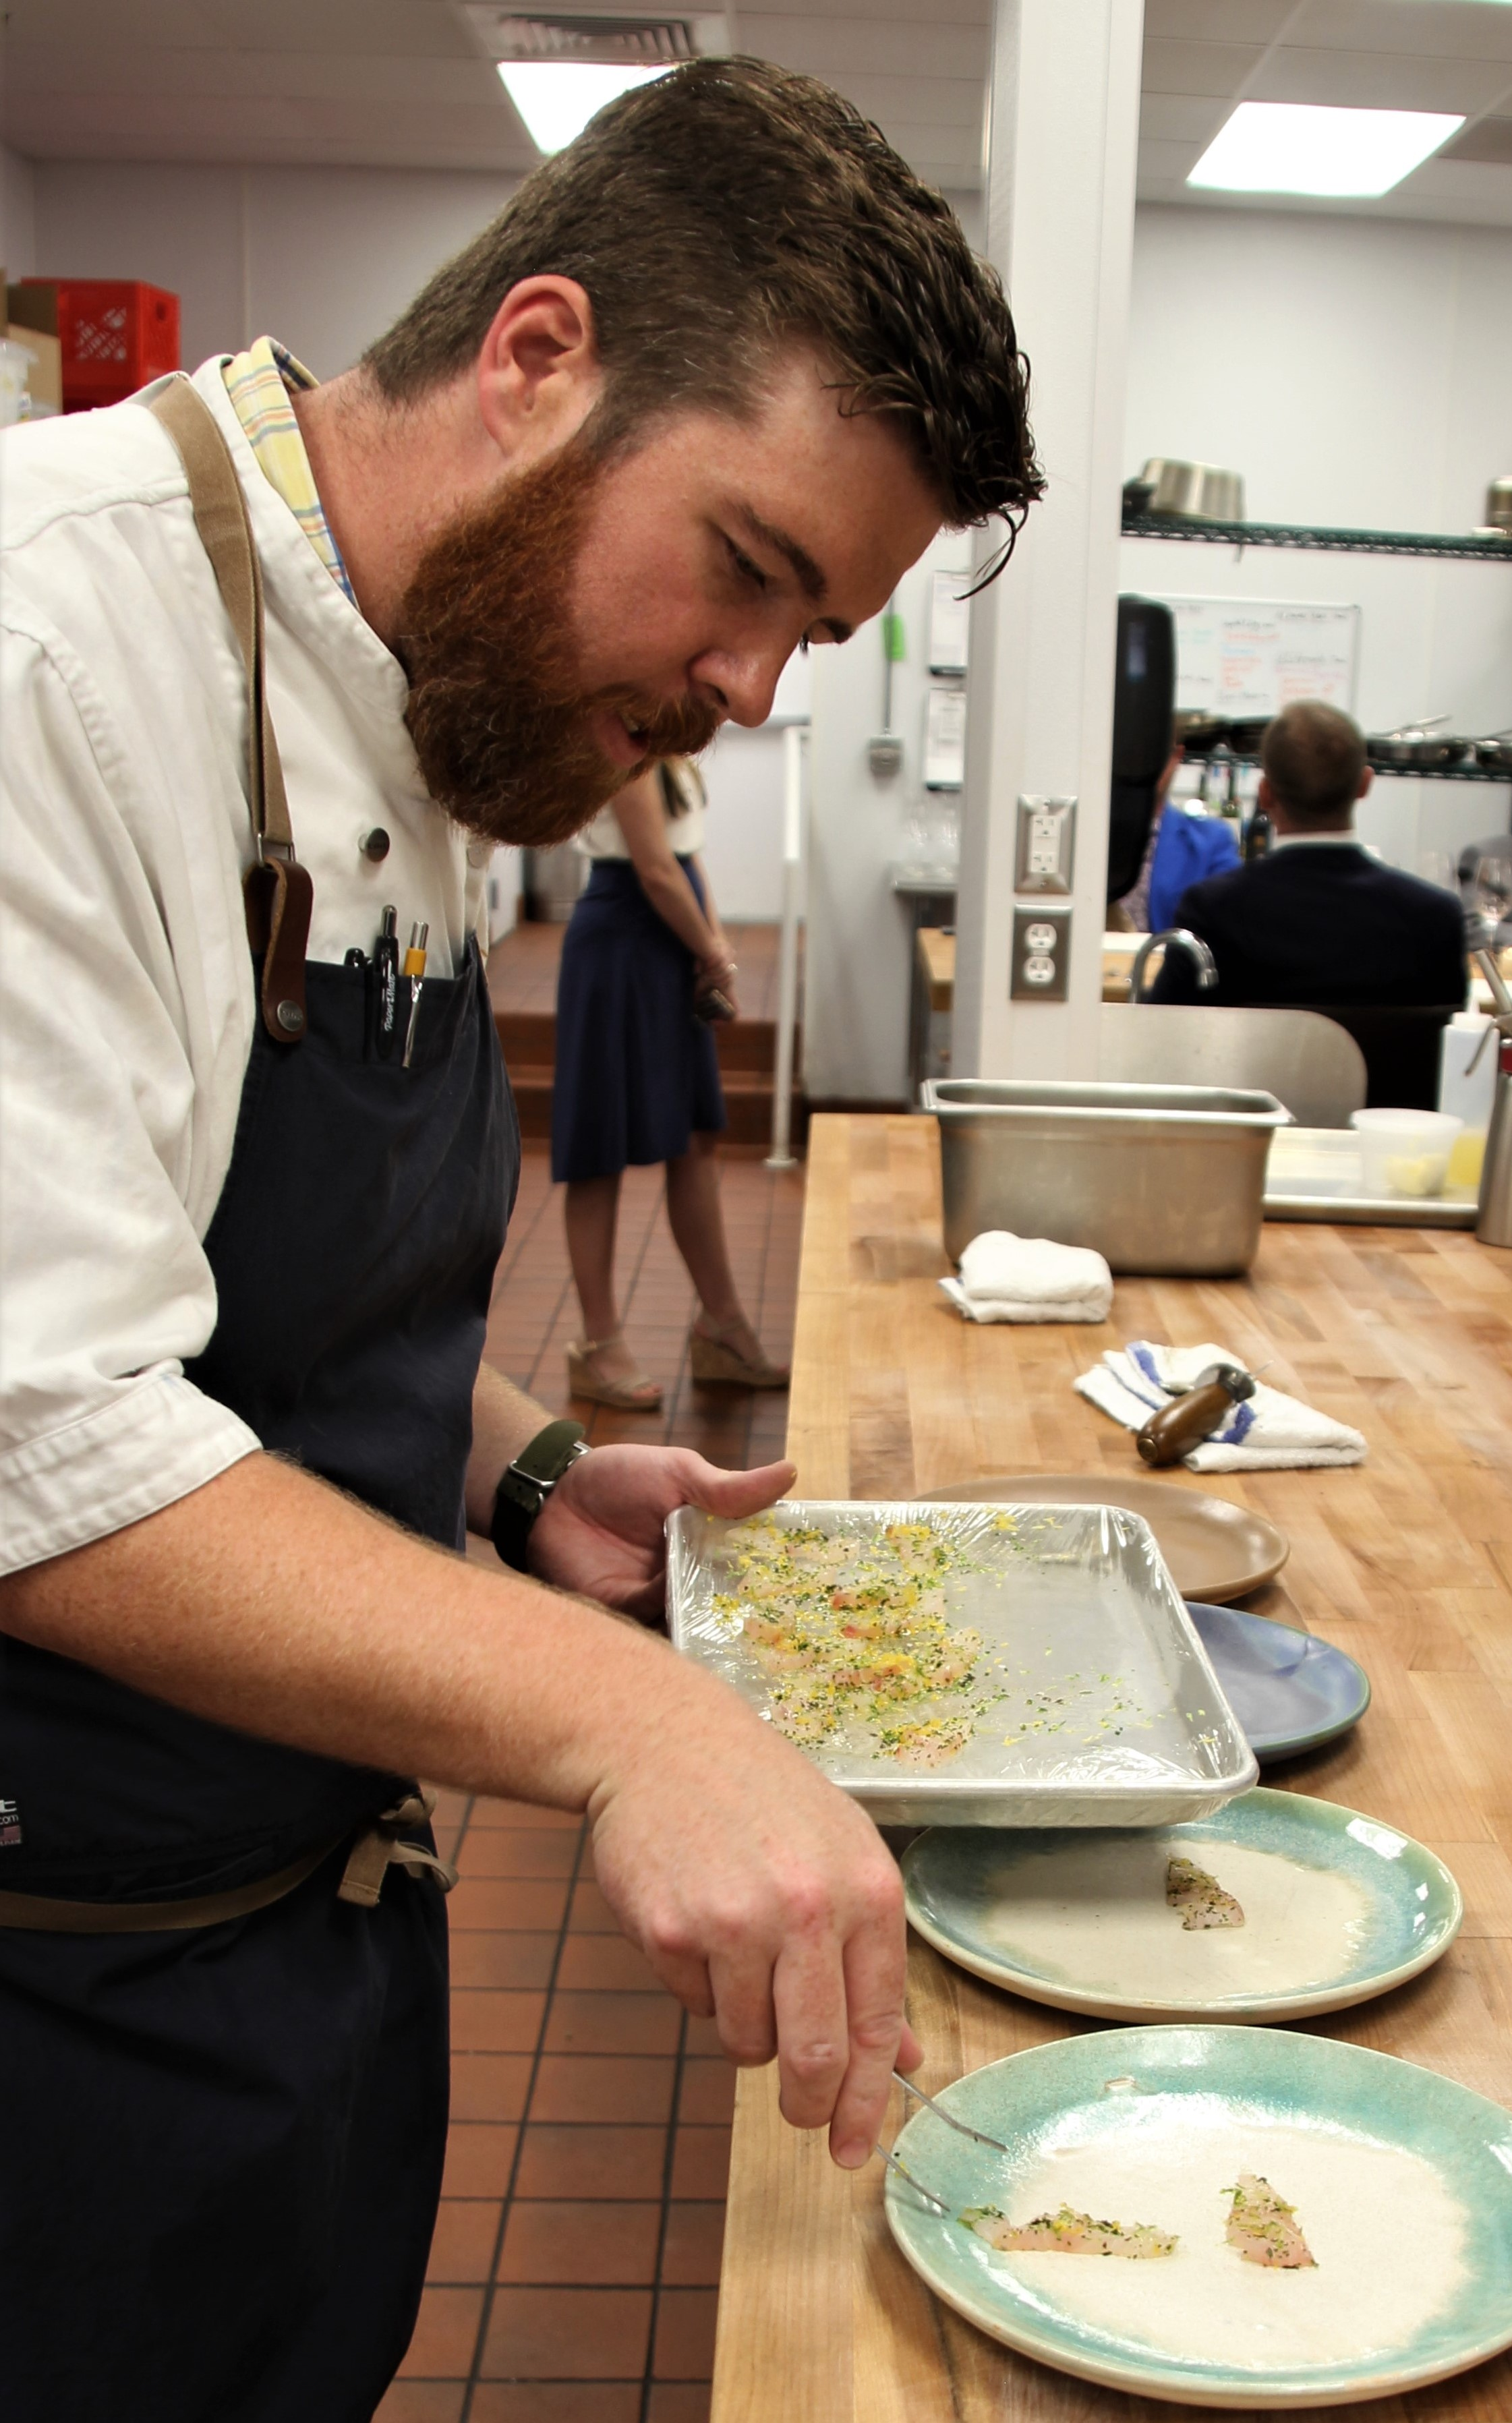 Chef Austin Sumrall, image courtesy Julian Brunt